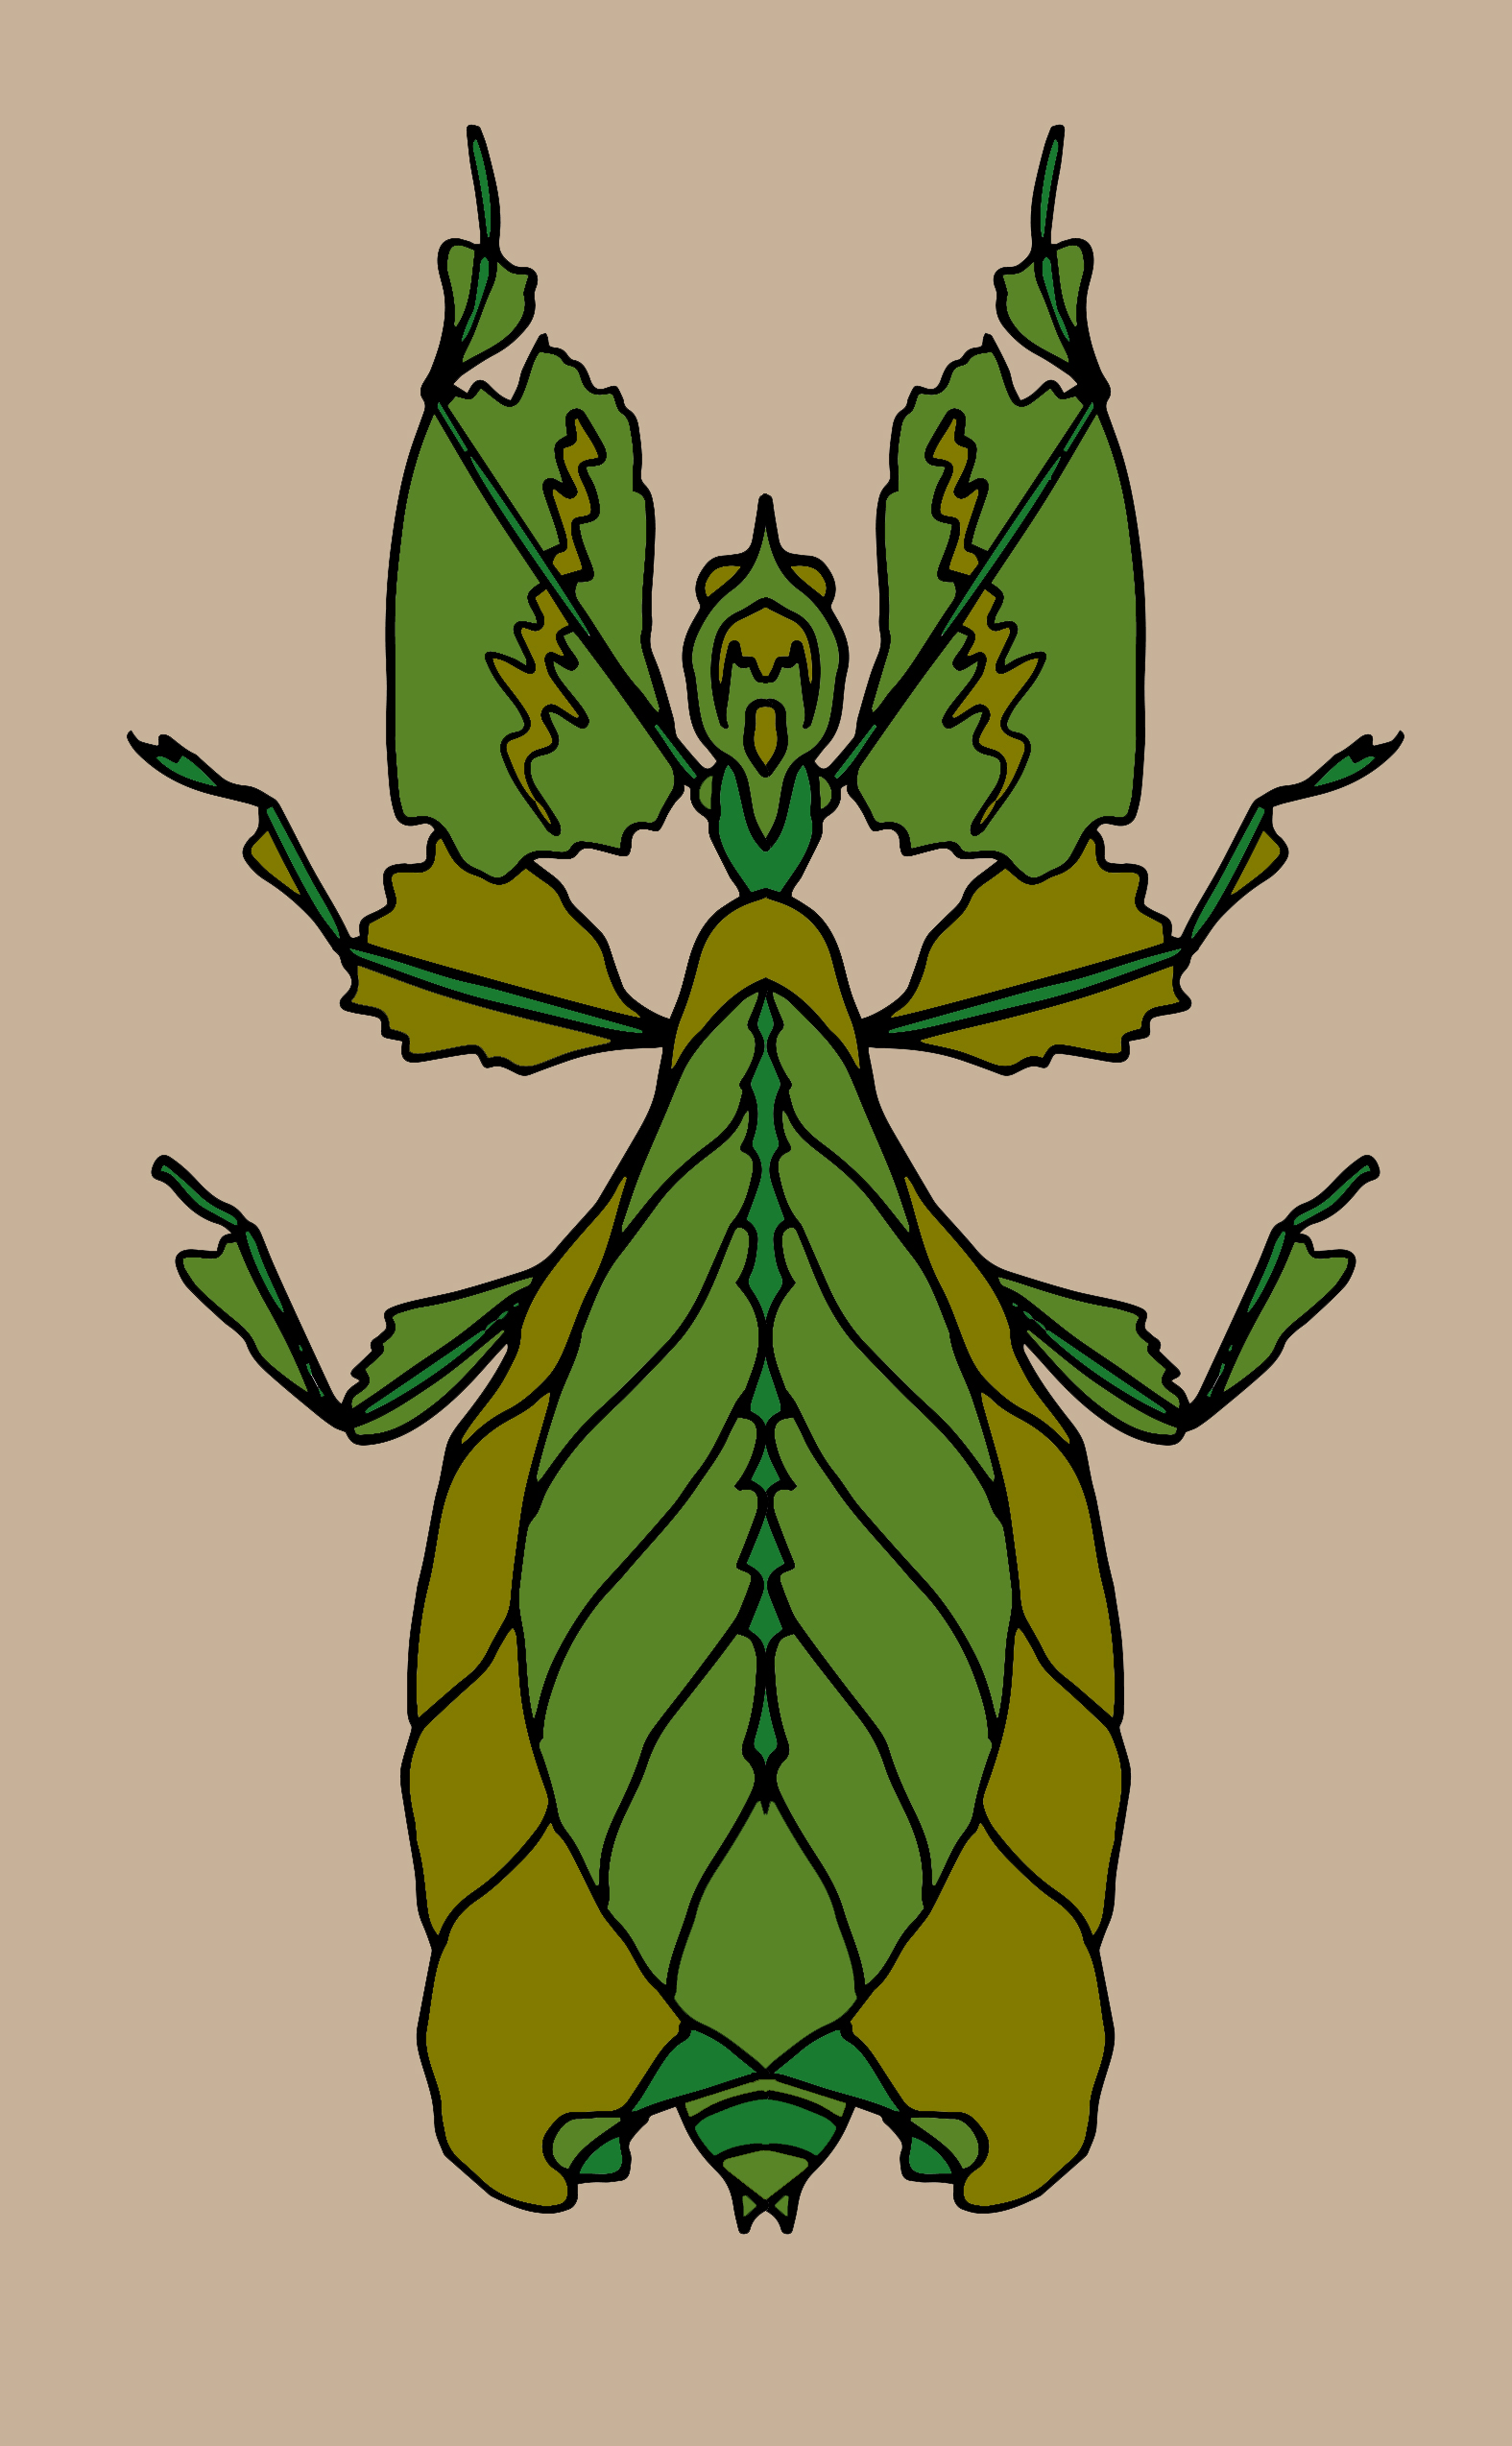 080719 Leaf Bug Color 1.jpg